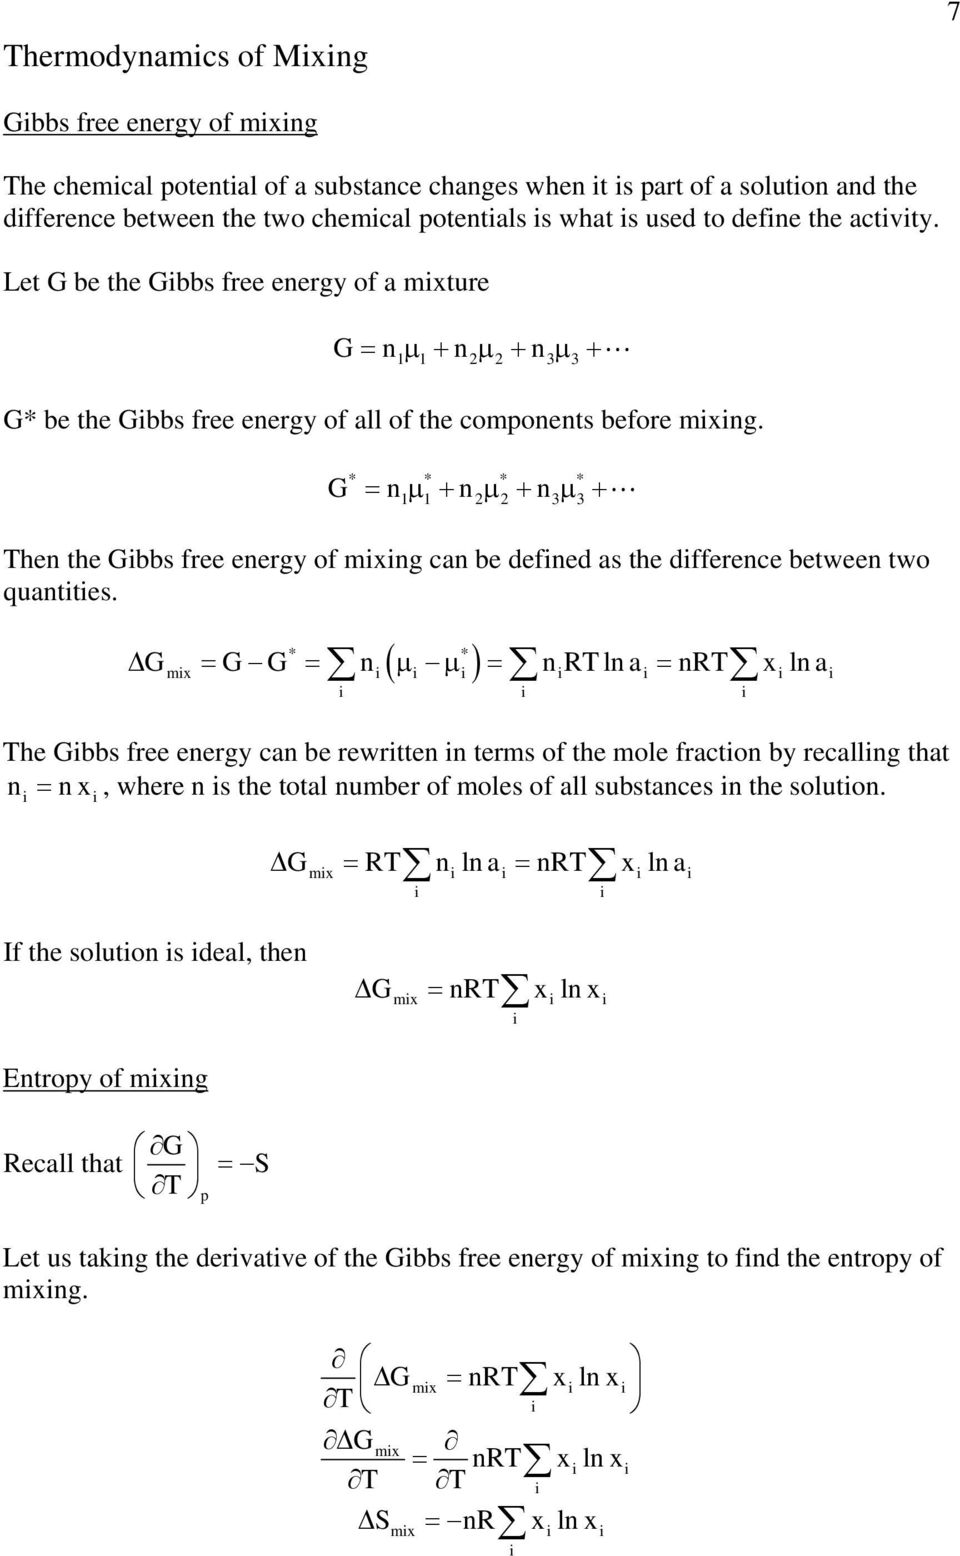 G = n + n + n + 3 3 hen the Gbbs free energy of mxng can be defned as the dfference between two quanttes.